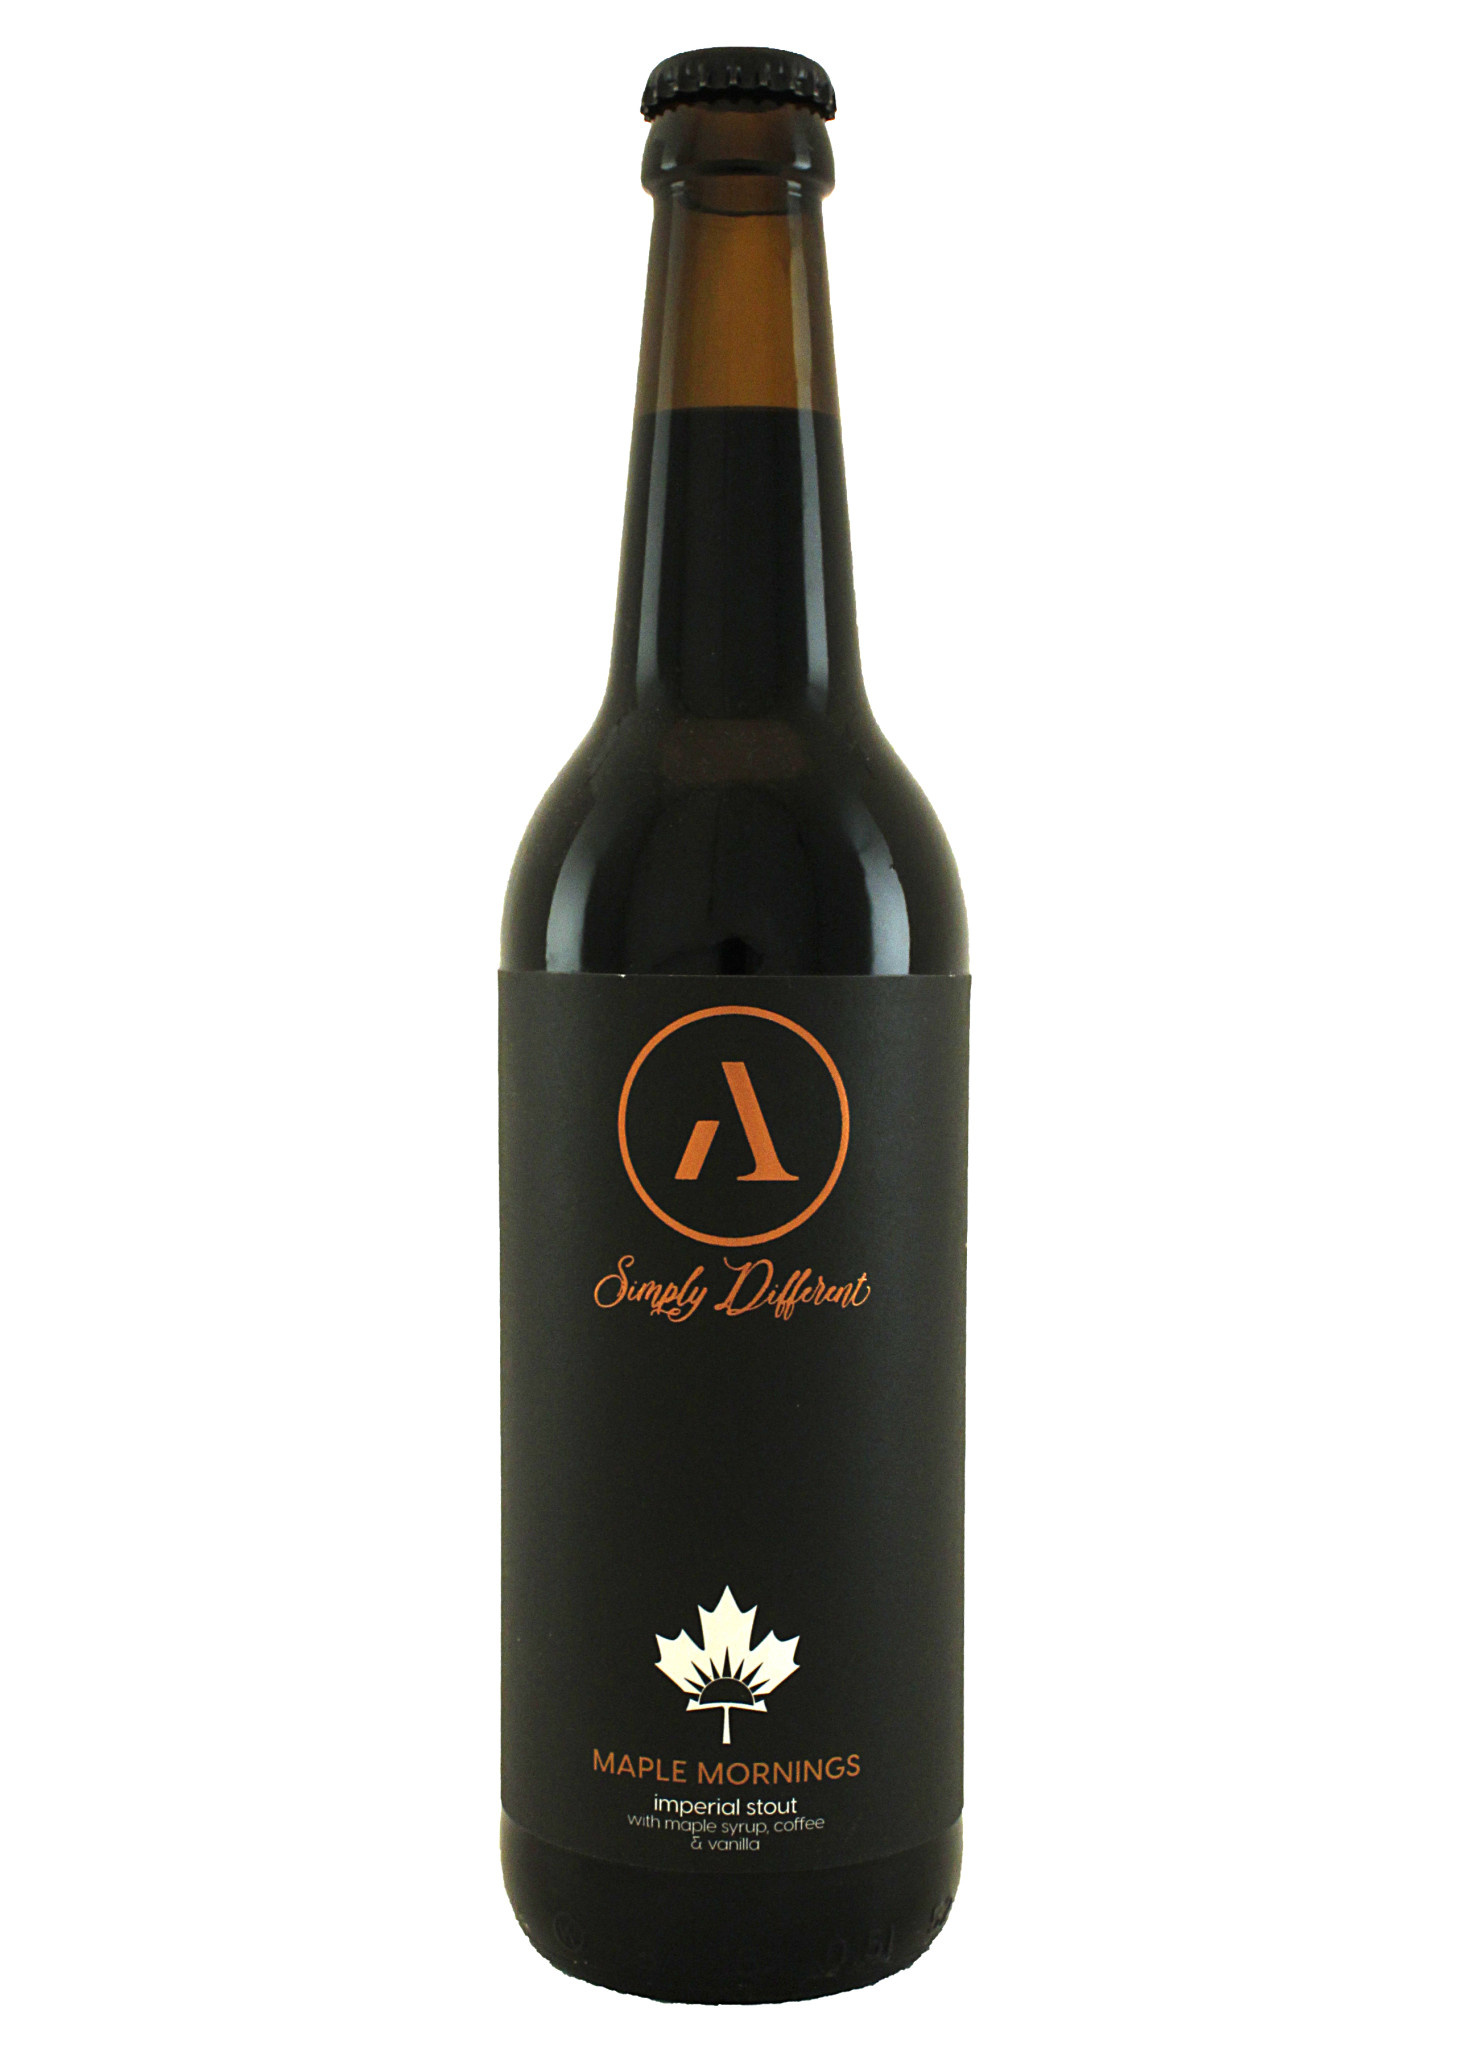 """Abnormal Beer """"Maple Mornings"""" Imperial Stout 500ml San Diego, California"""